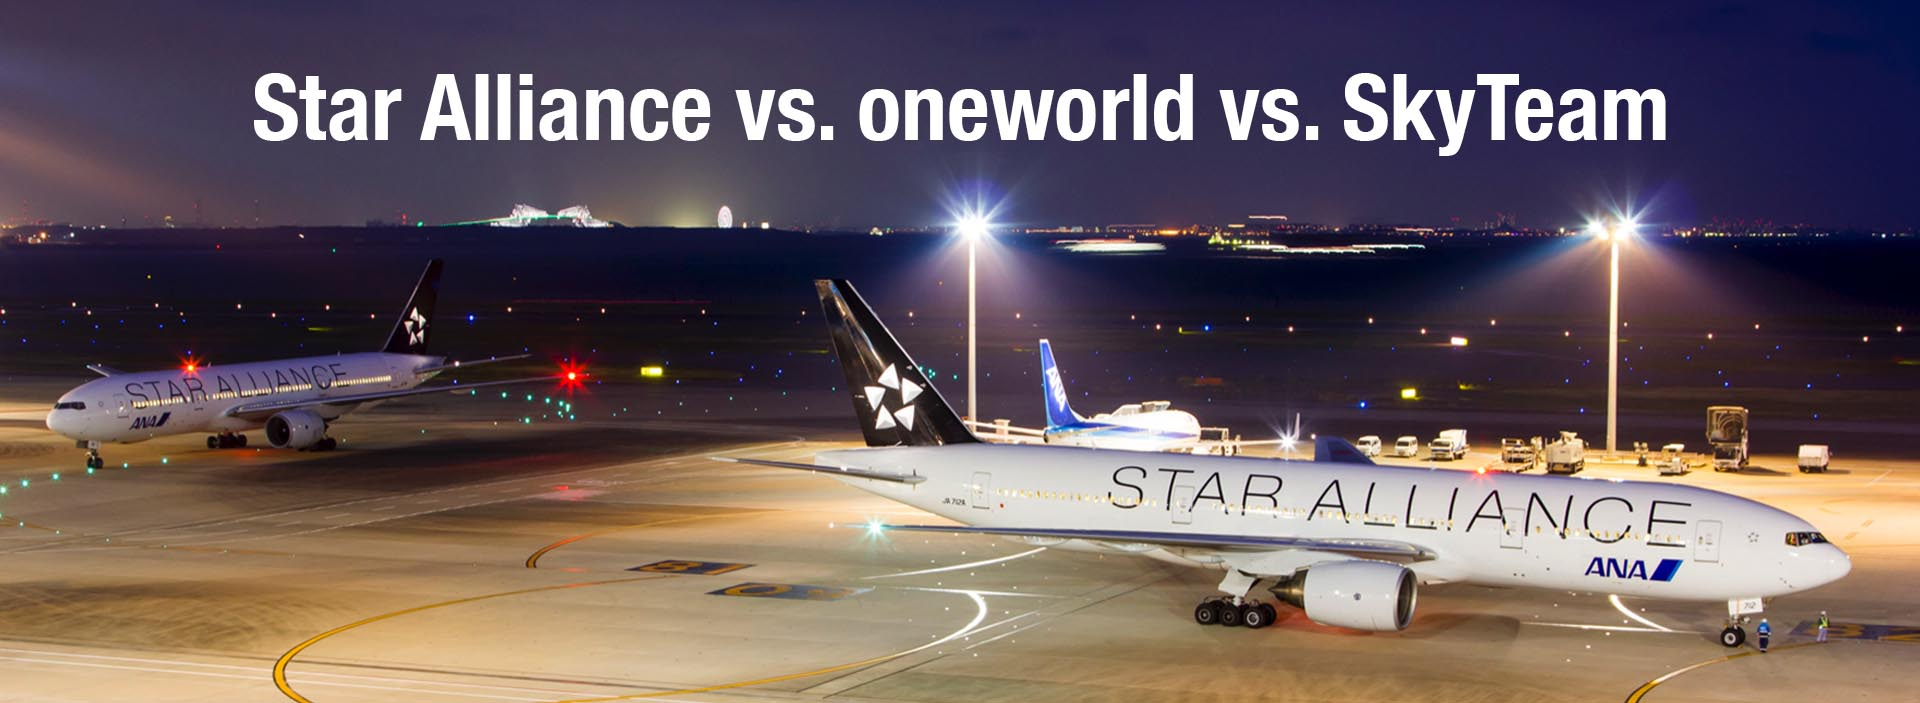 Star Alliance vs. oneworld vs. SkyTeam: Which of the Three Major Airline Alliances Is the Best?